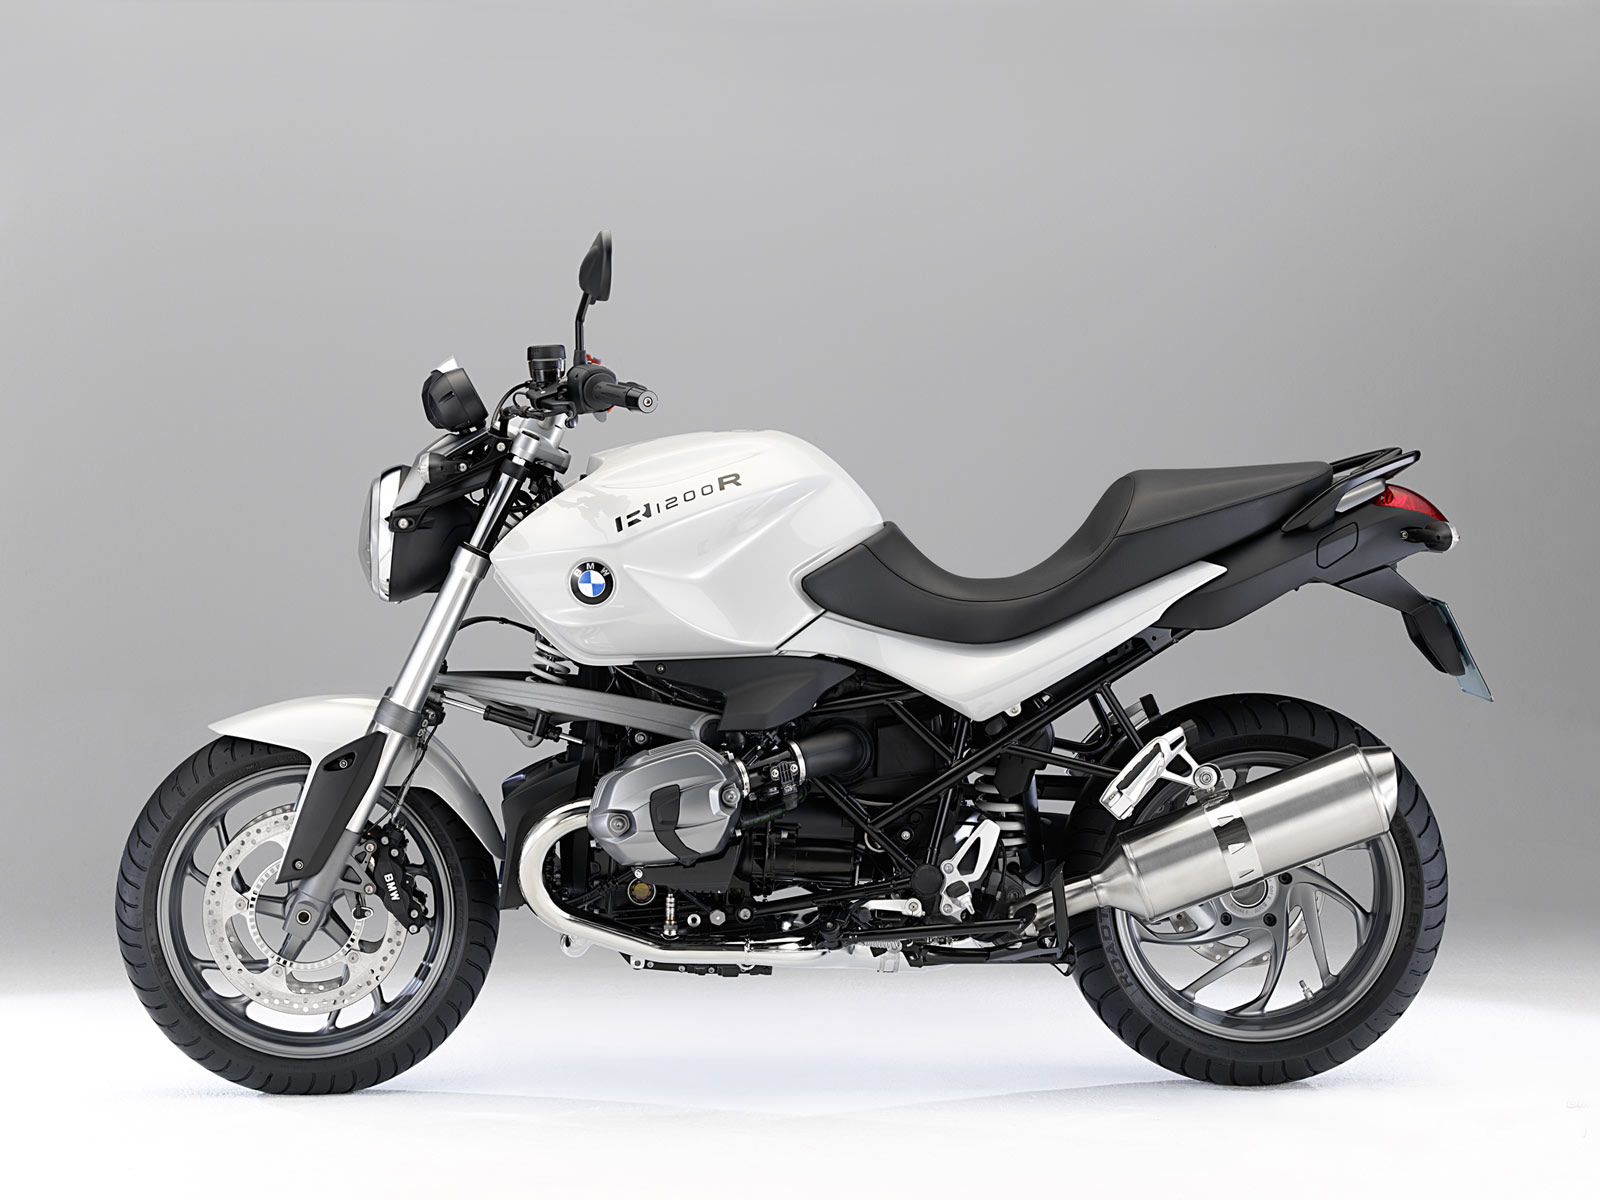 2011 bmw r1200r motorcycle pictures accident lawyers info. Black Bedroom Furniture Sets. Home Design Ideas